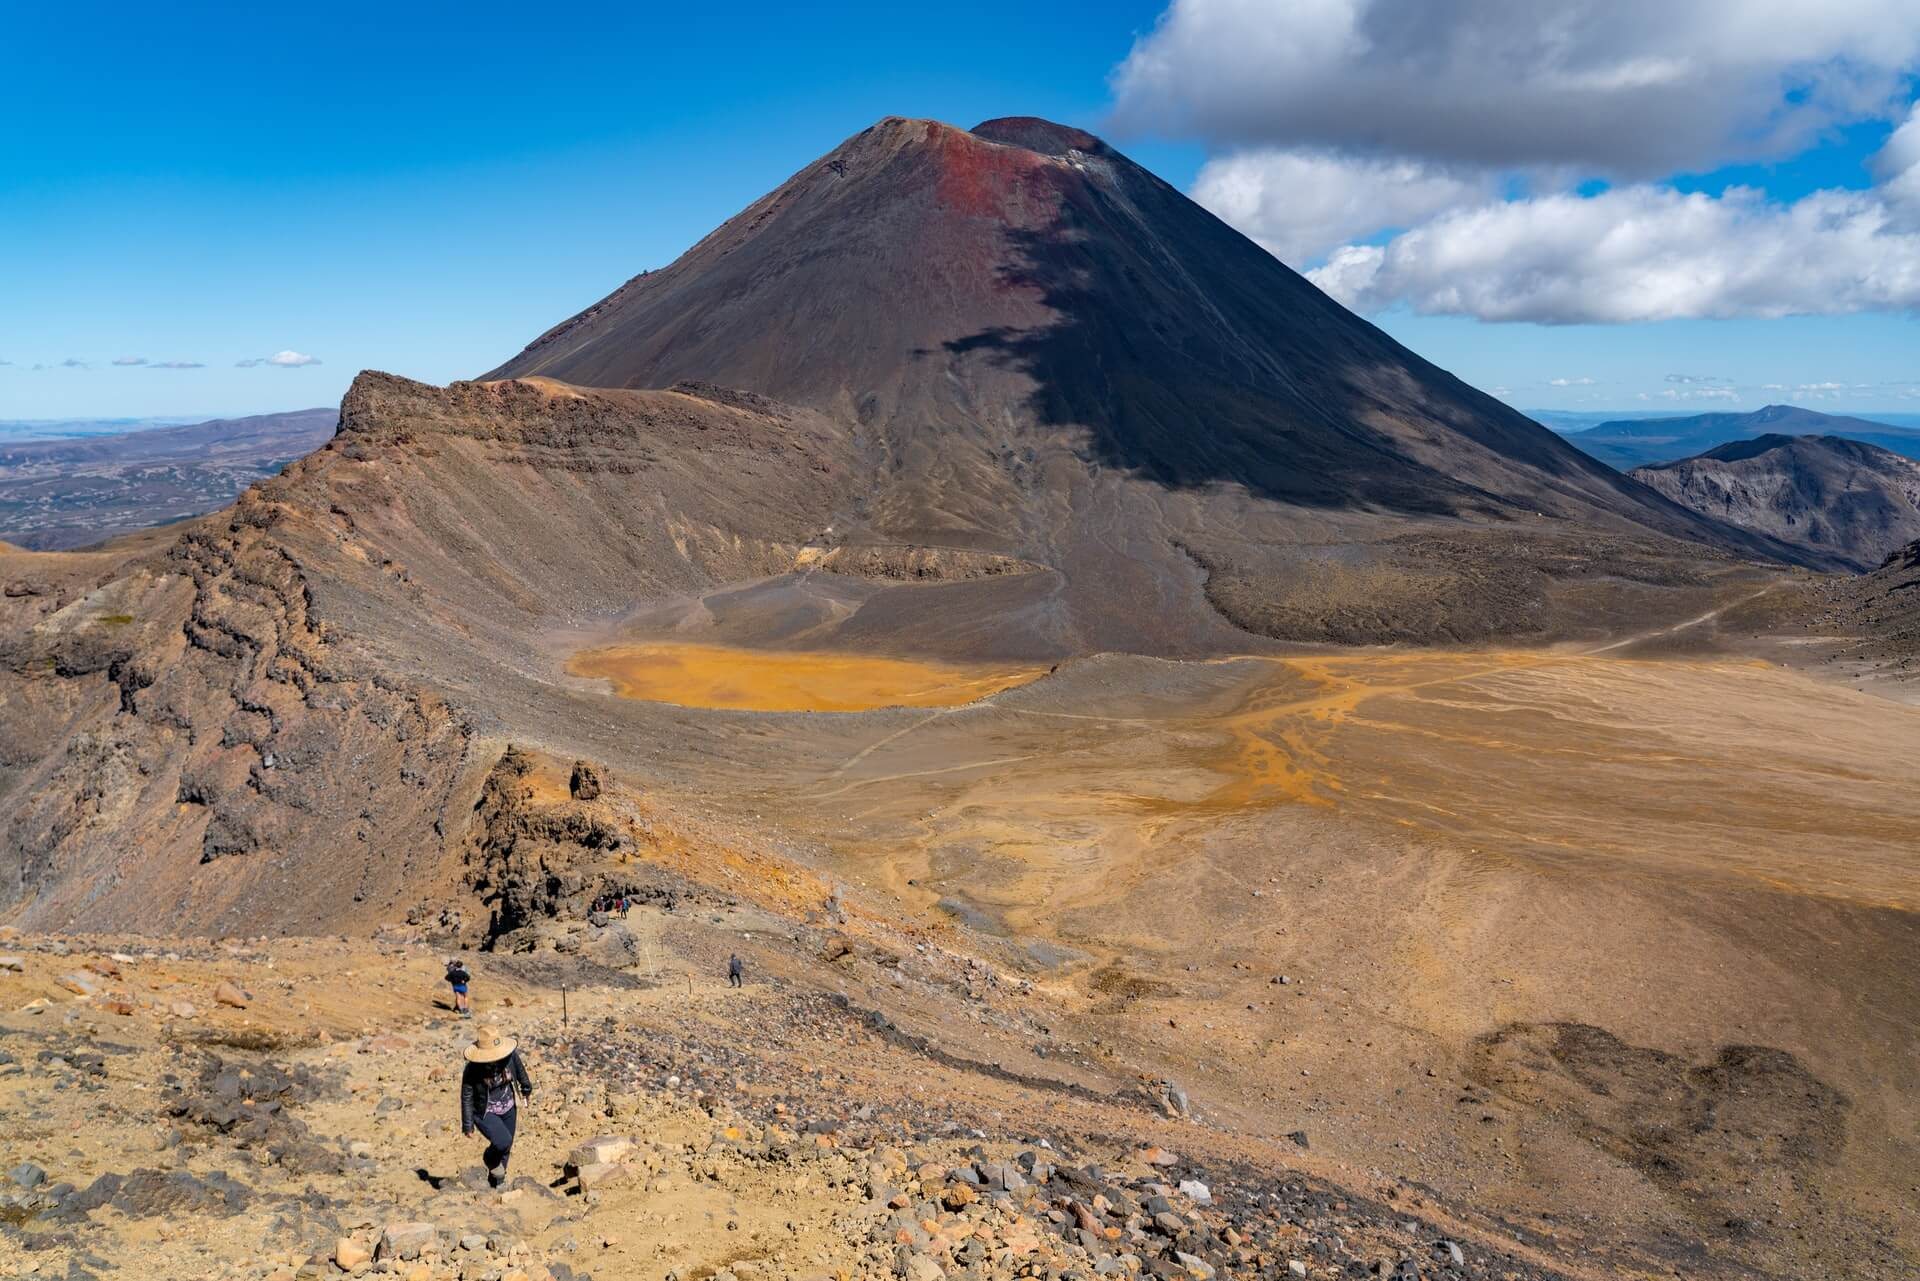 """Tramping (hiking) the Tongariro Crossing featuring """"Mount Doom"""" - one of the Great Walks of New Zealand"""